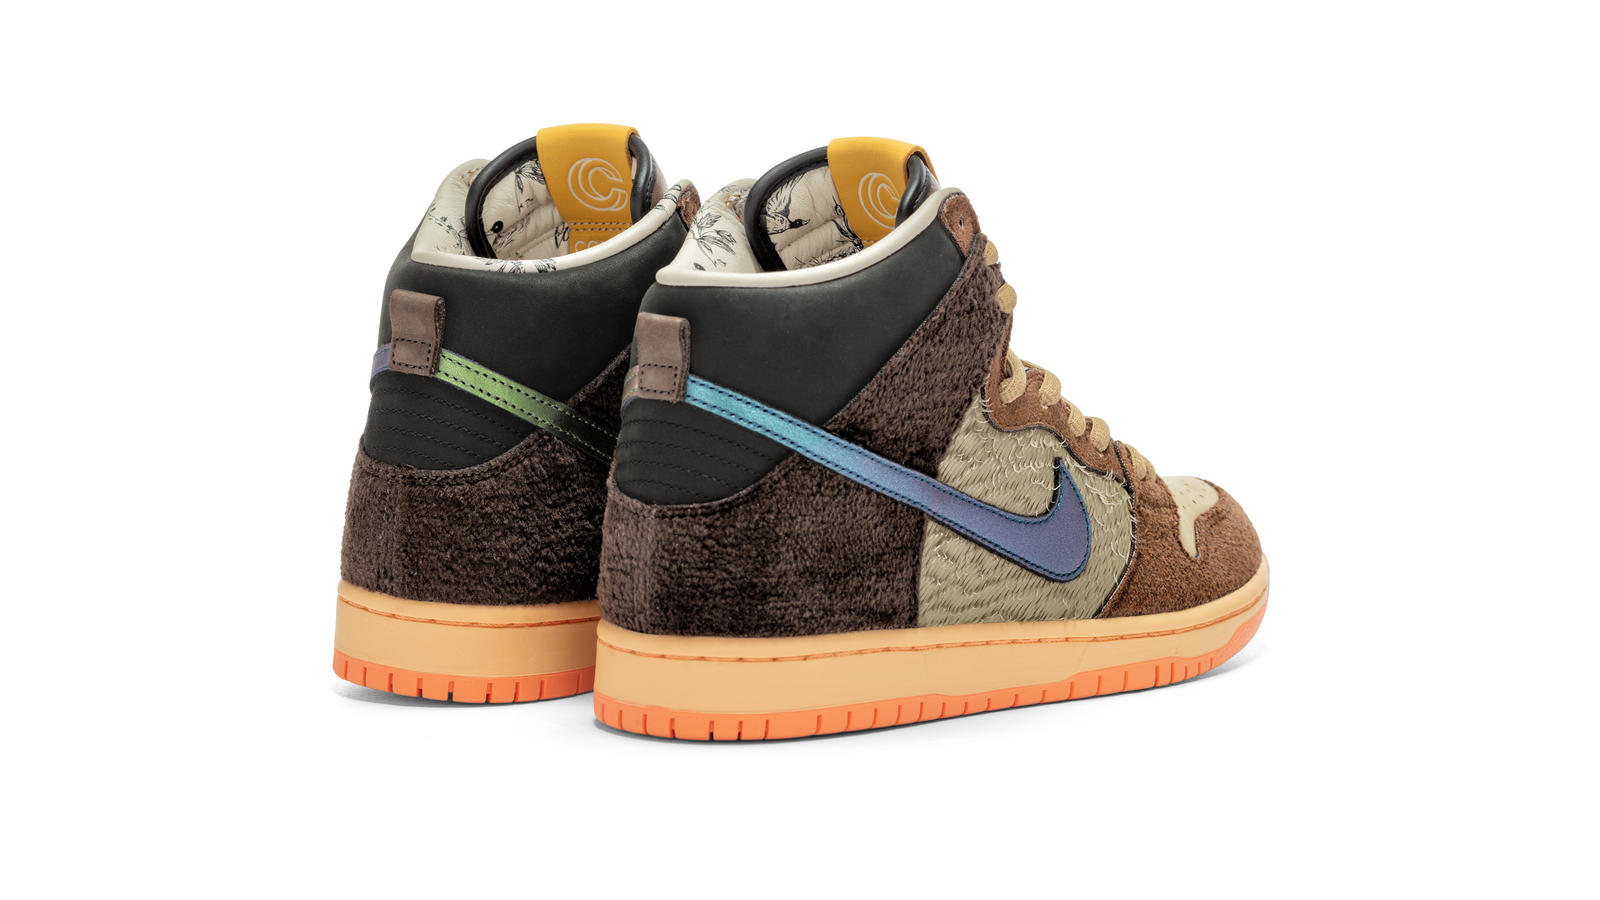 Concepts x Nike SB Dunk High TurDUNKen Official Images 7